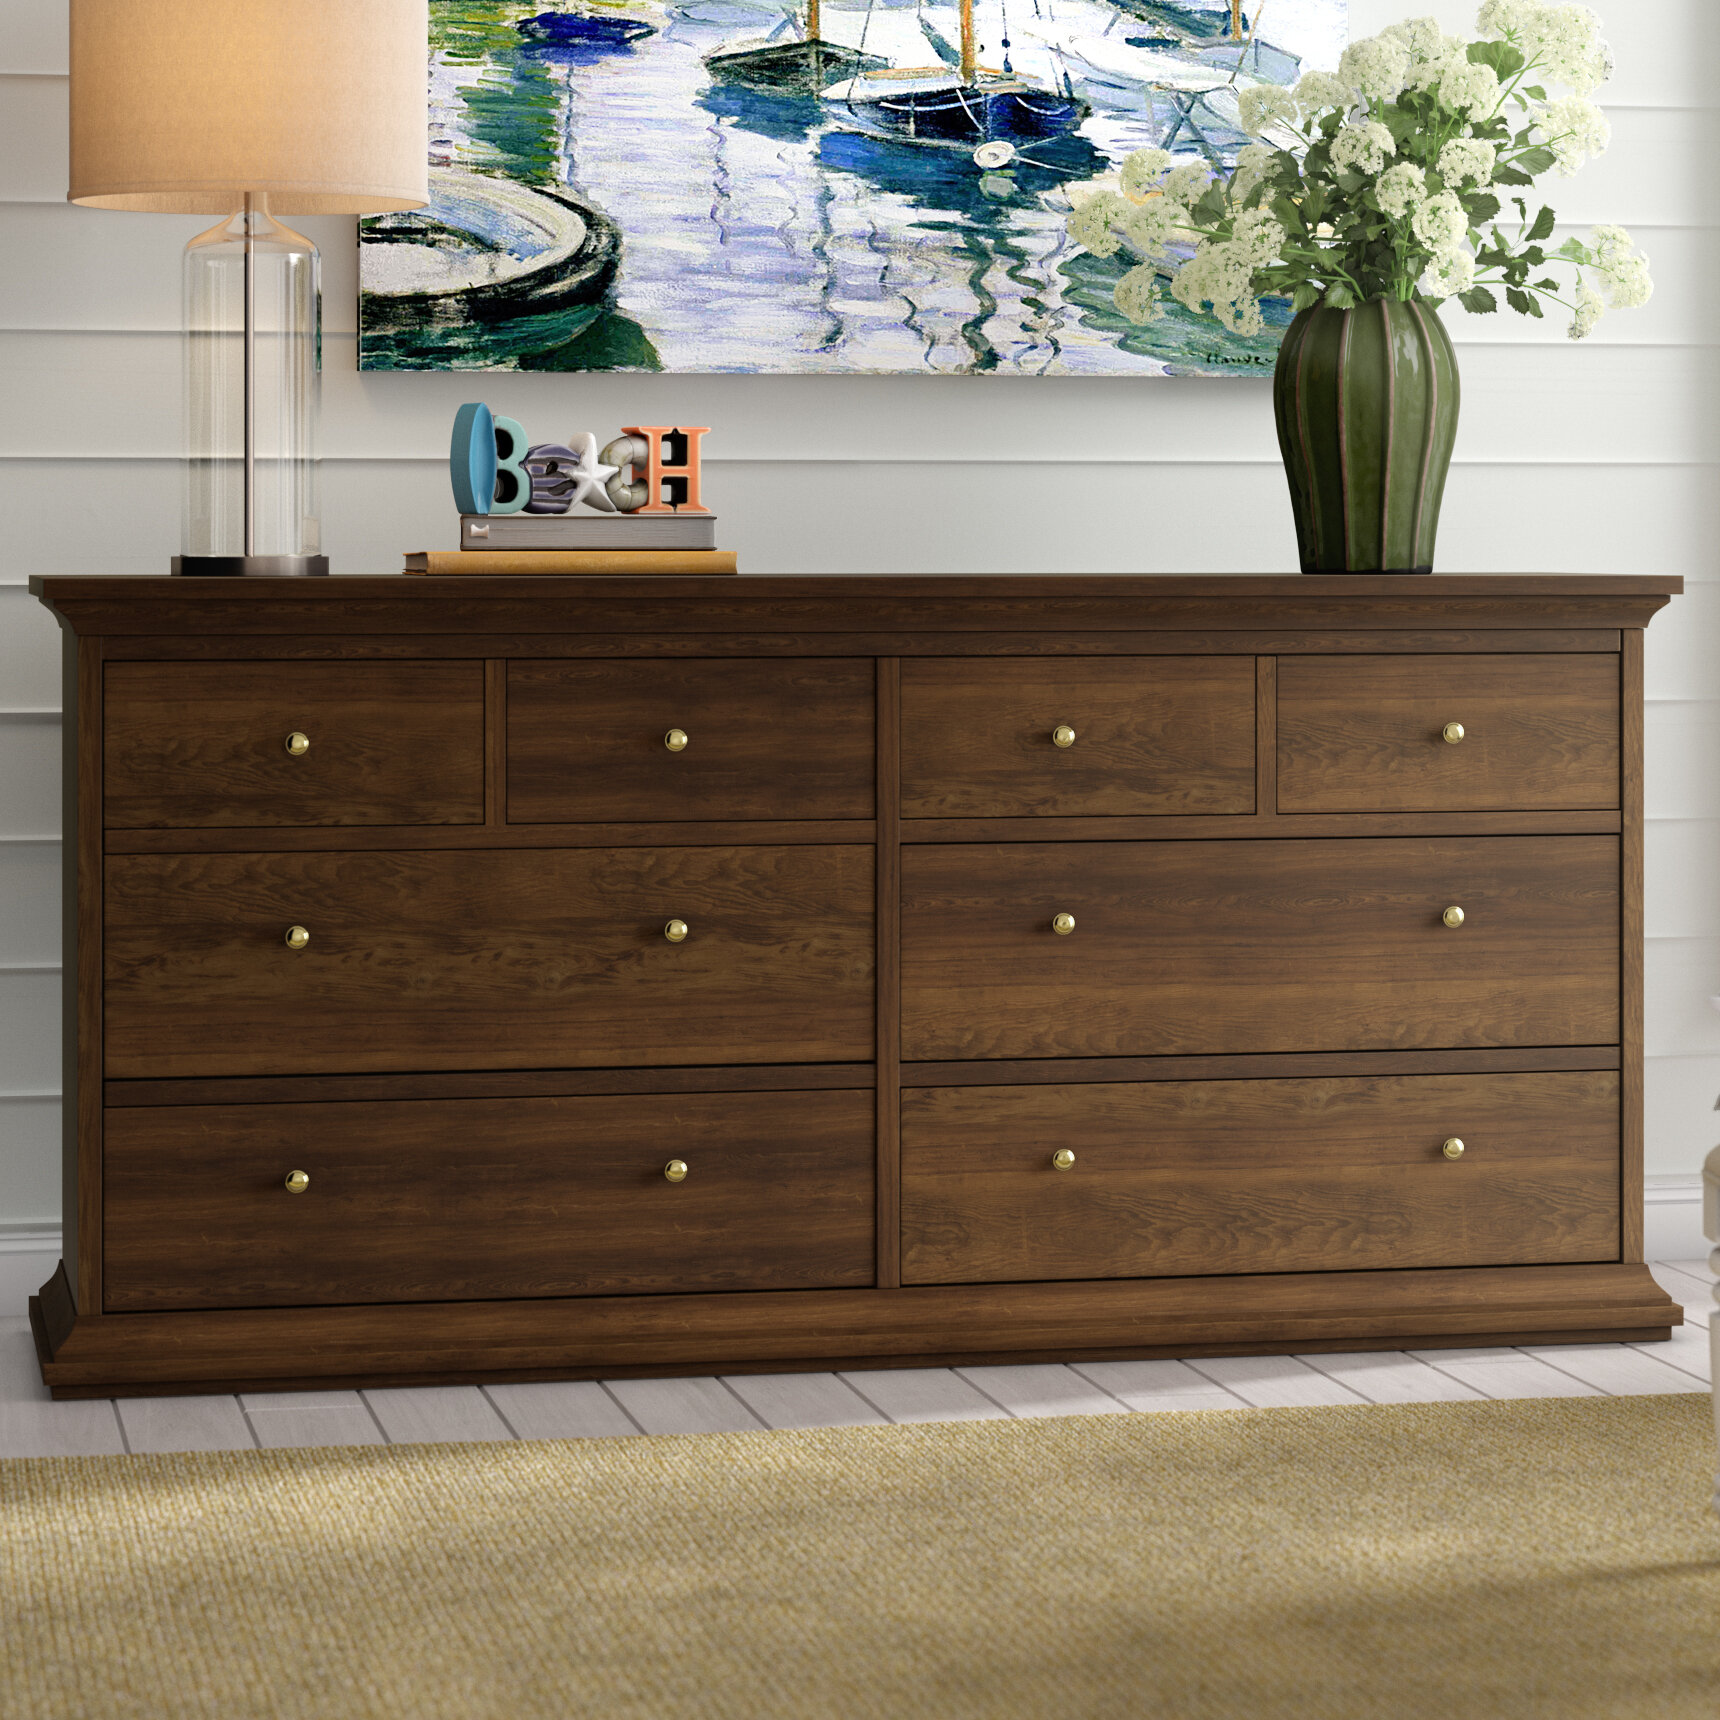 Beachcrest Home Breckenridge 8 Drawer Double Dresser Reviews